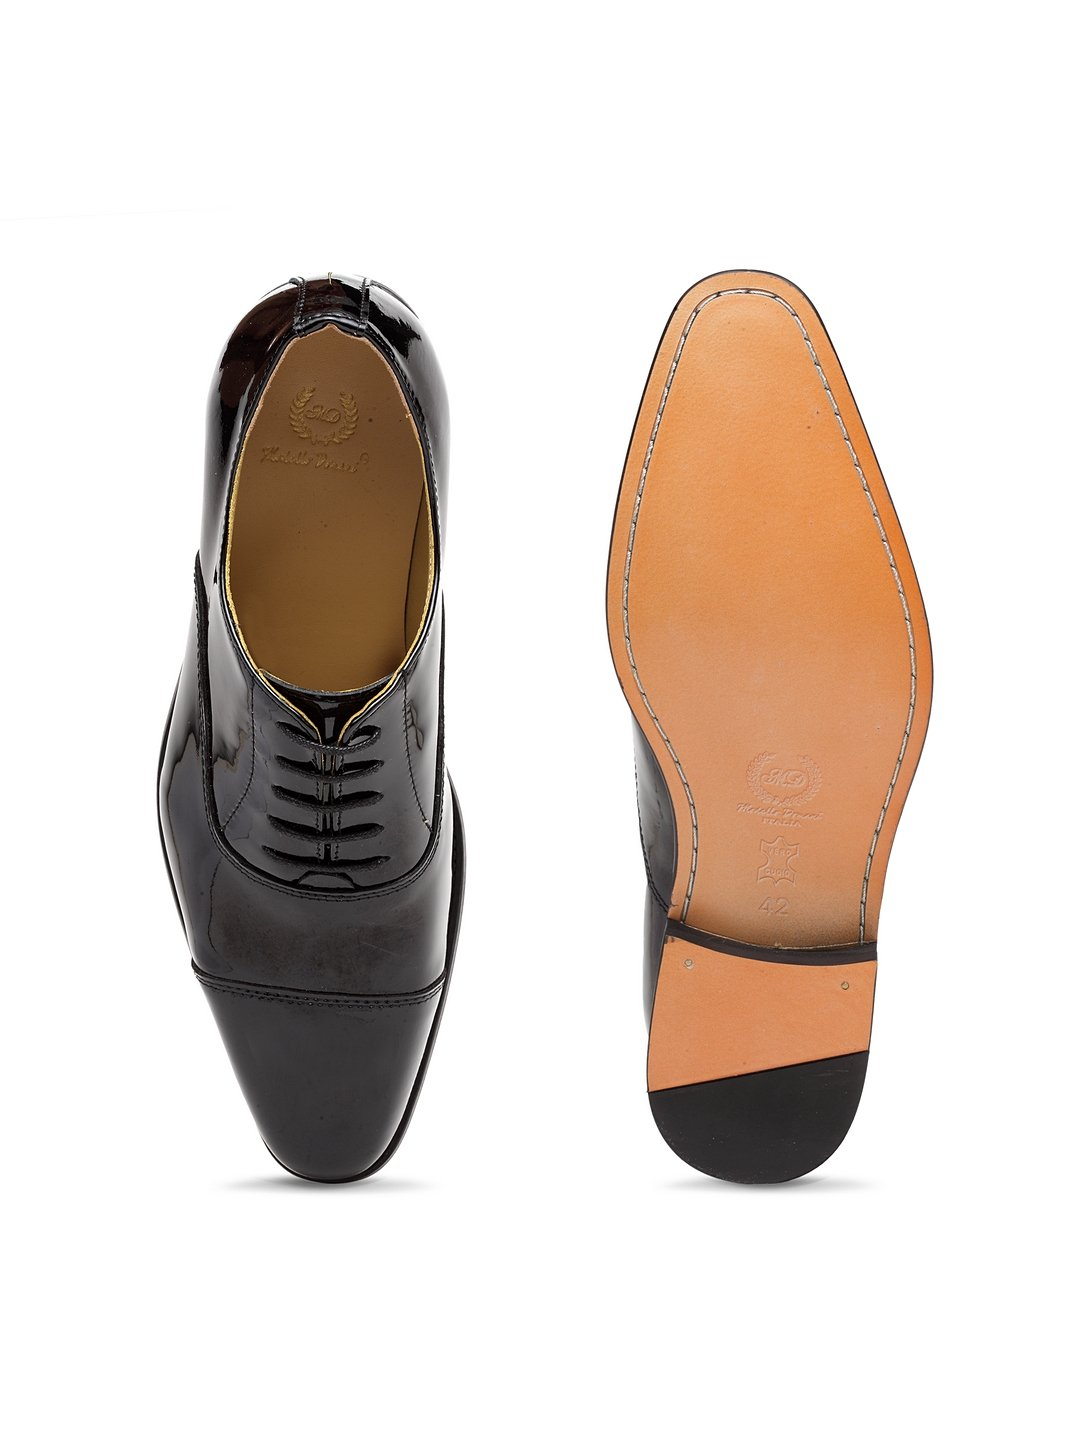 Italia Leather Oxfords (Patent Black)